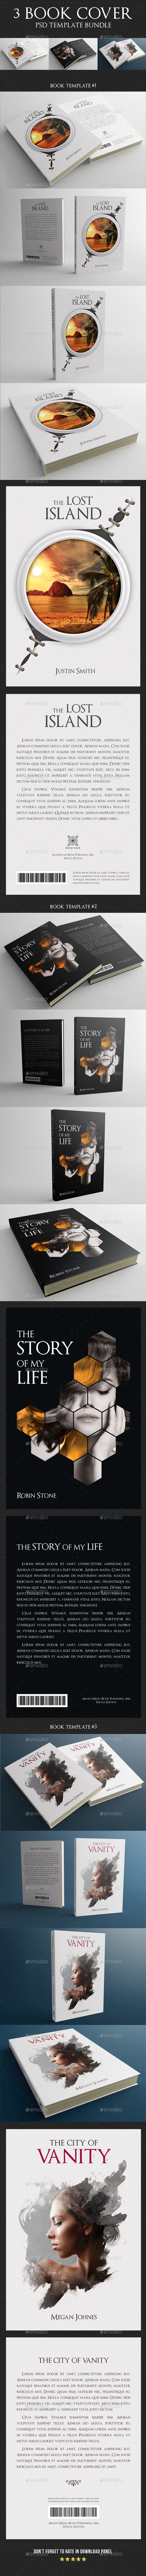 3 in 1 Book Cover Template Bundle 01 - Miscellaneous Print Templates